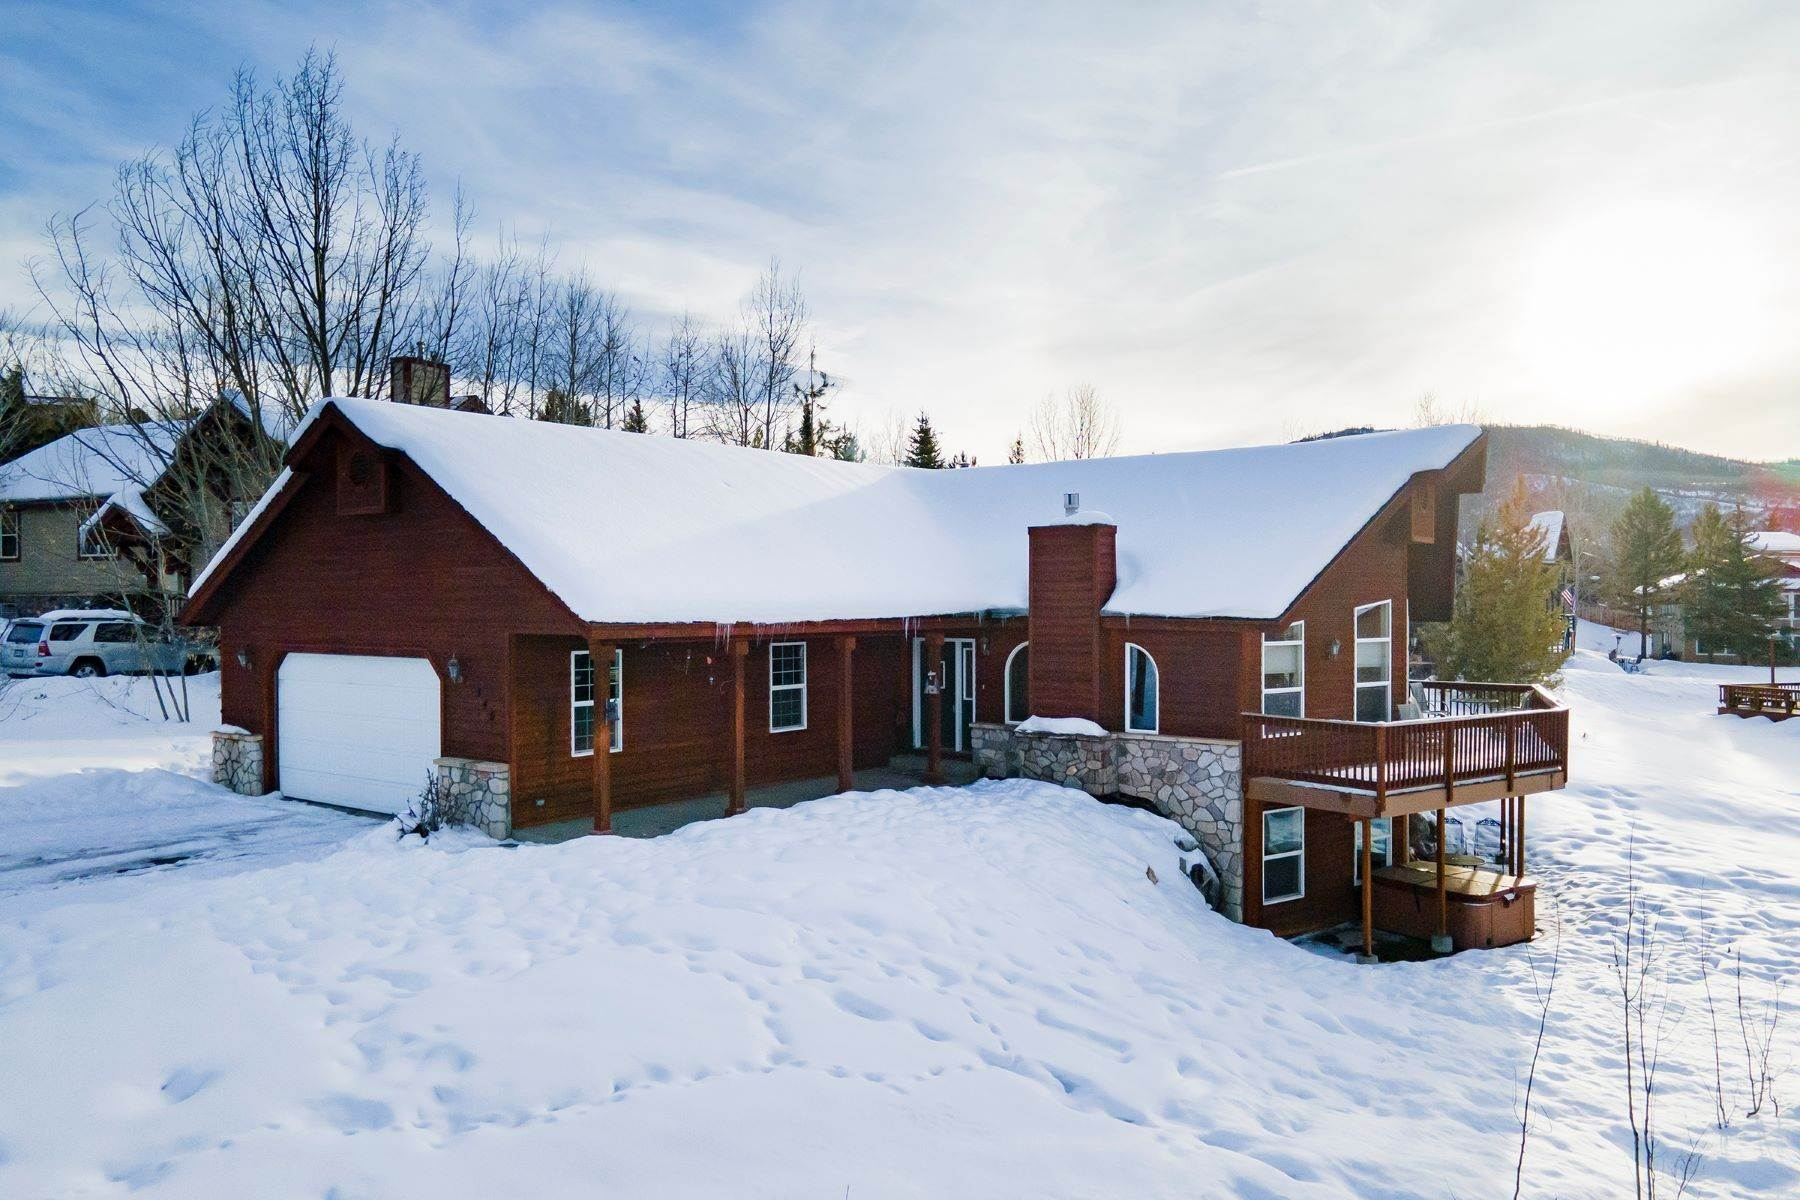 Property for Sale at Fish Creek Falls Area Home 340 Apple Drive Steamboat Springs, Colorado 80487 United States